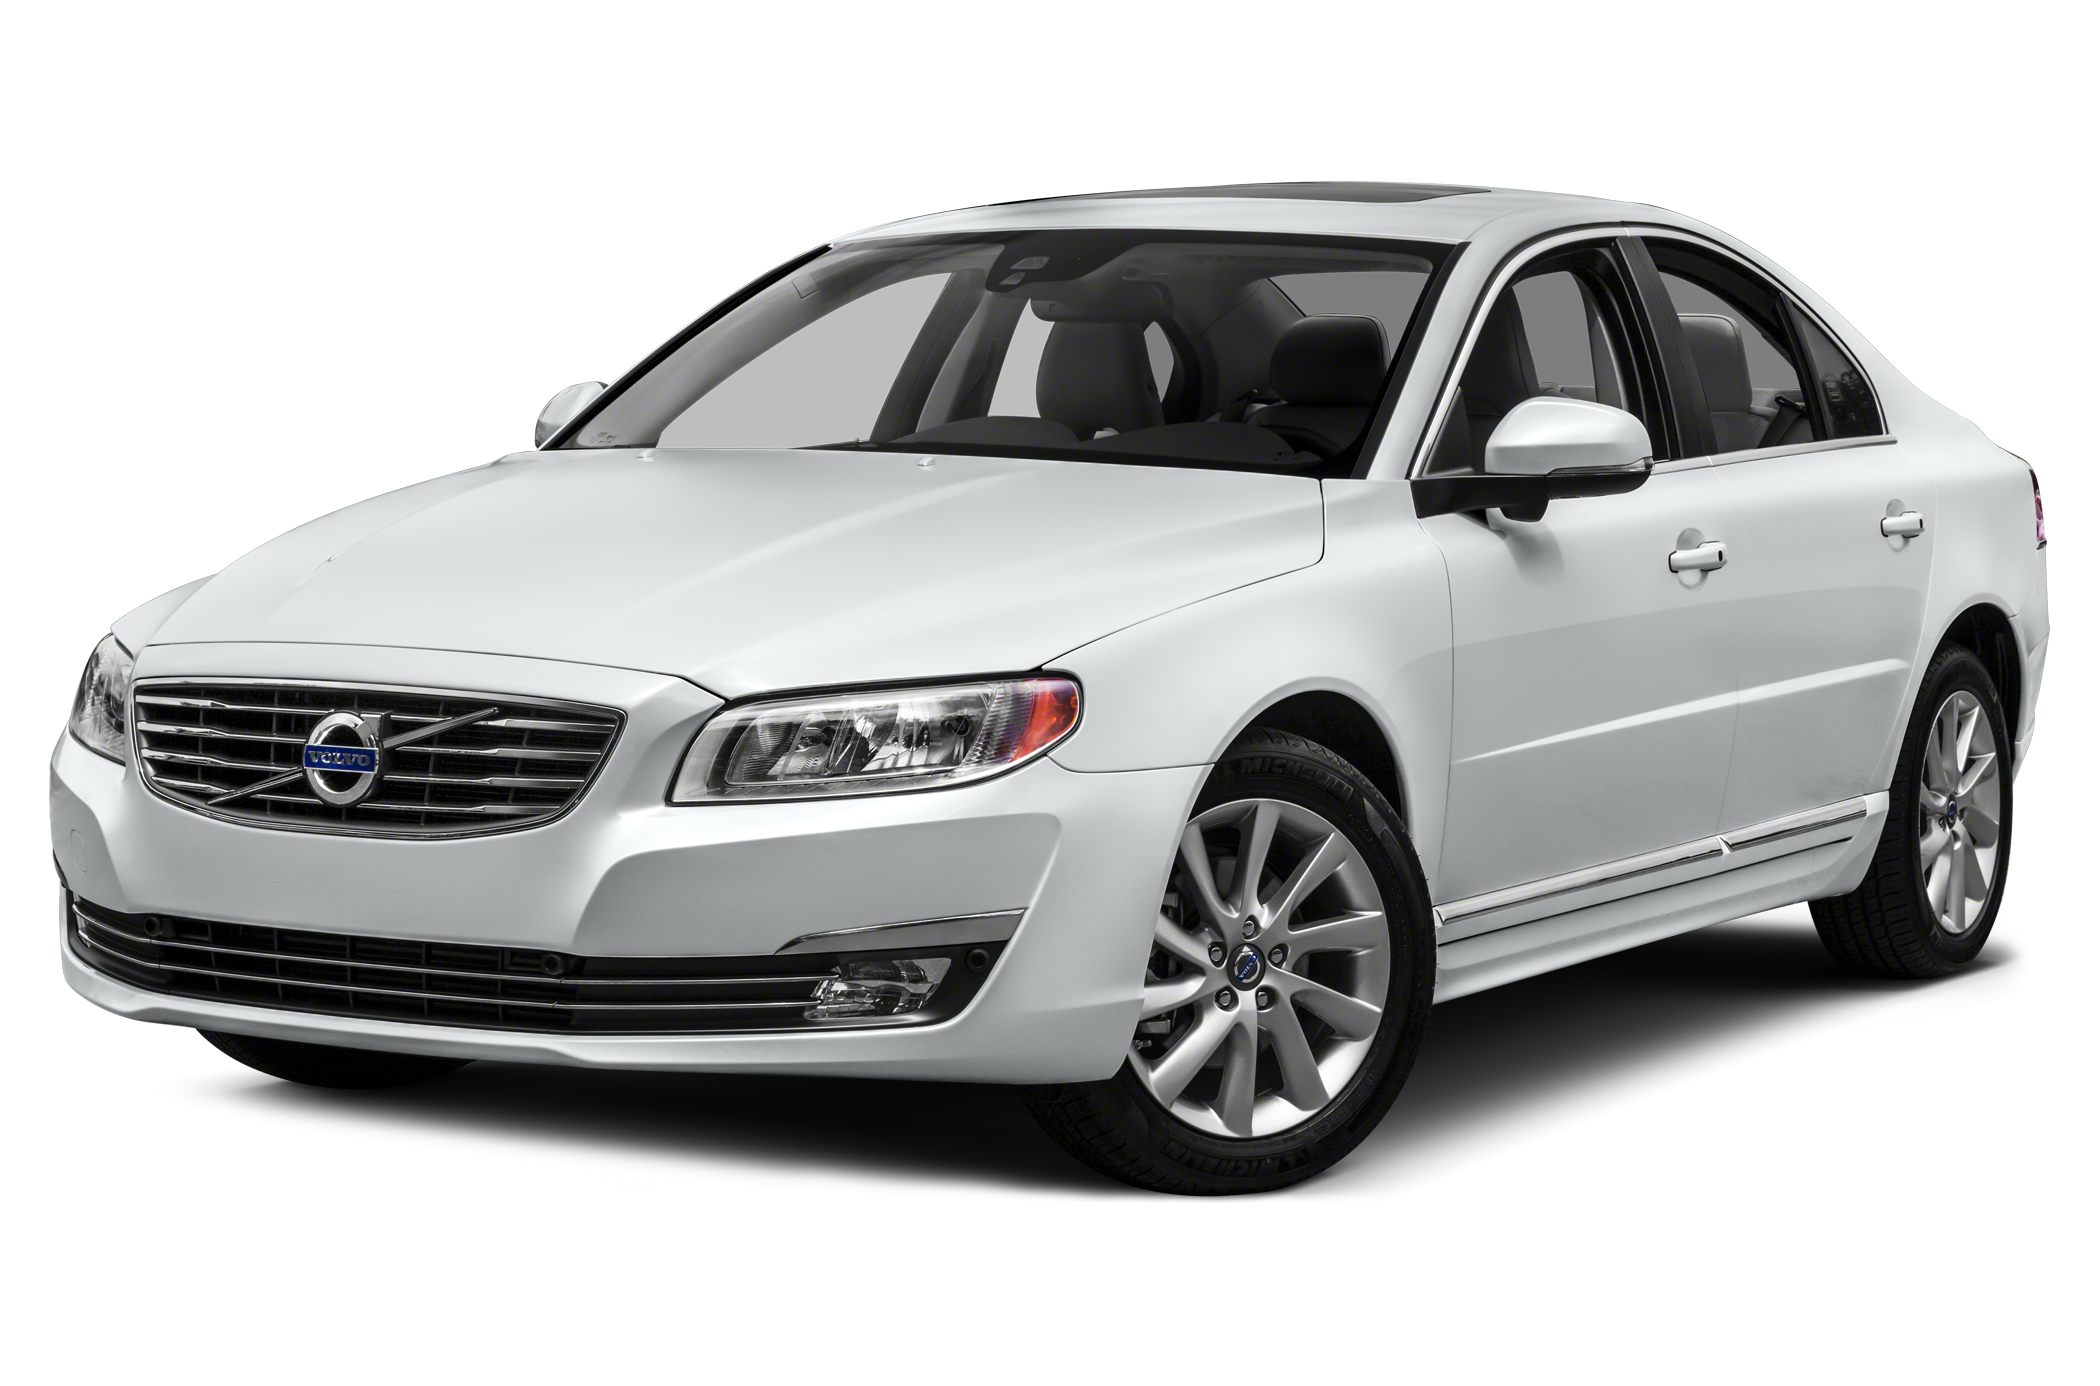 2015 Volvo S80 T5 Sedan for sale in Falls Church for $39,308 with 92 miles